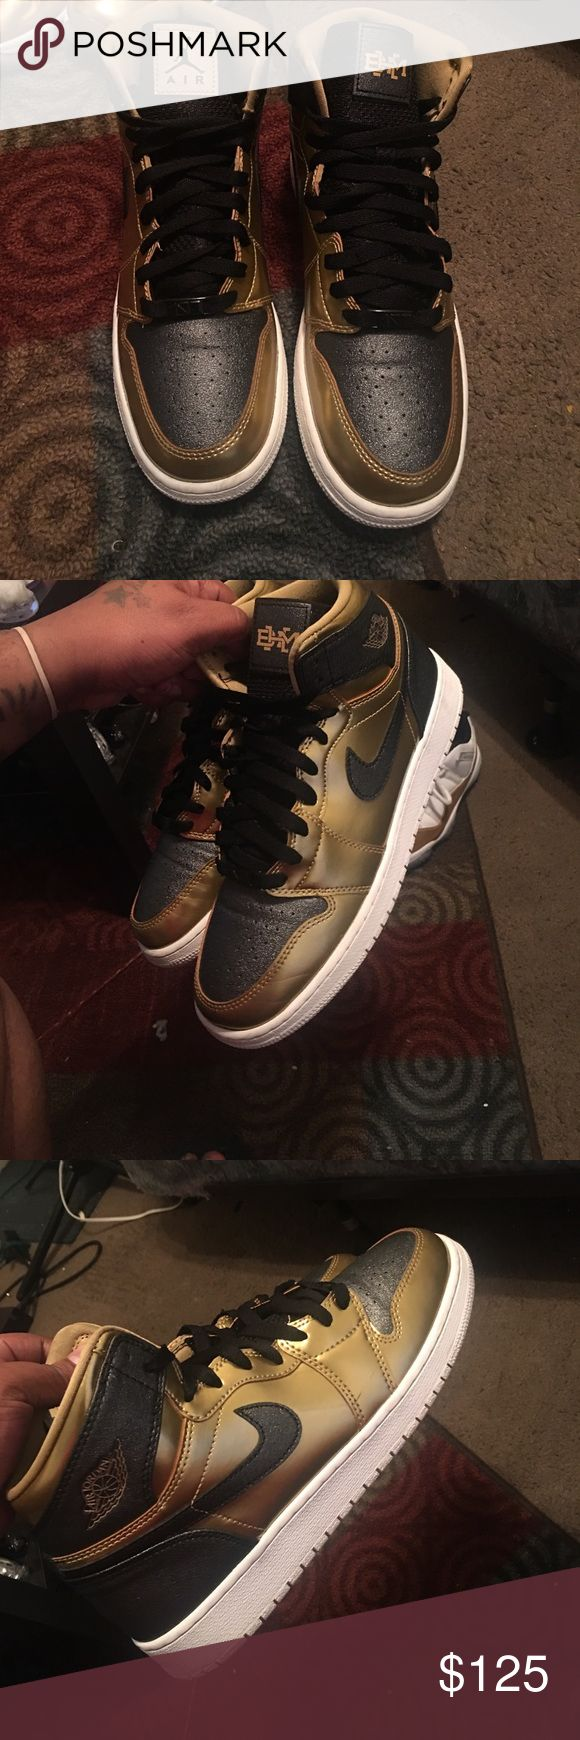 BHM 1s💪🏽💯 Black history retro mid 1s 2017 condition is great 8-10 Jordan Shoes Sneakers